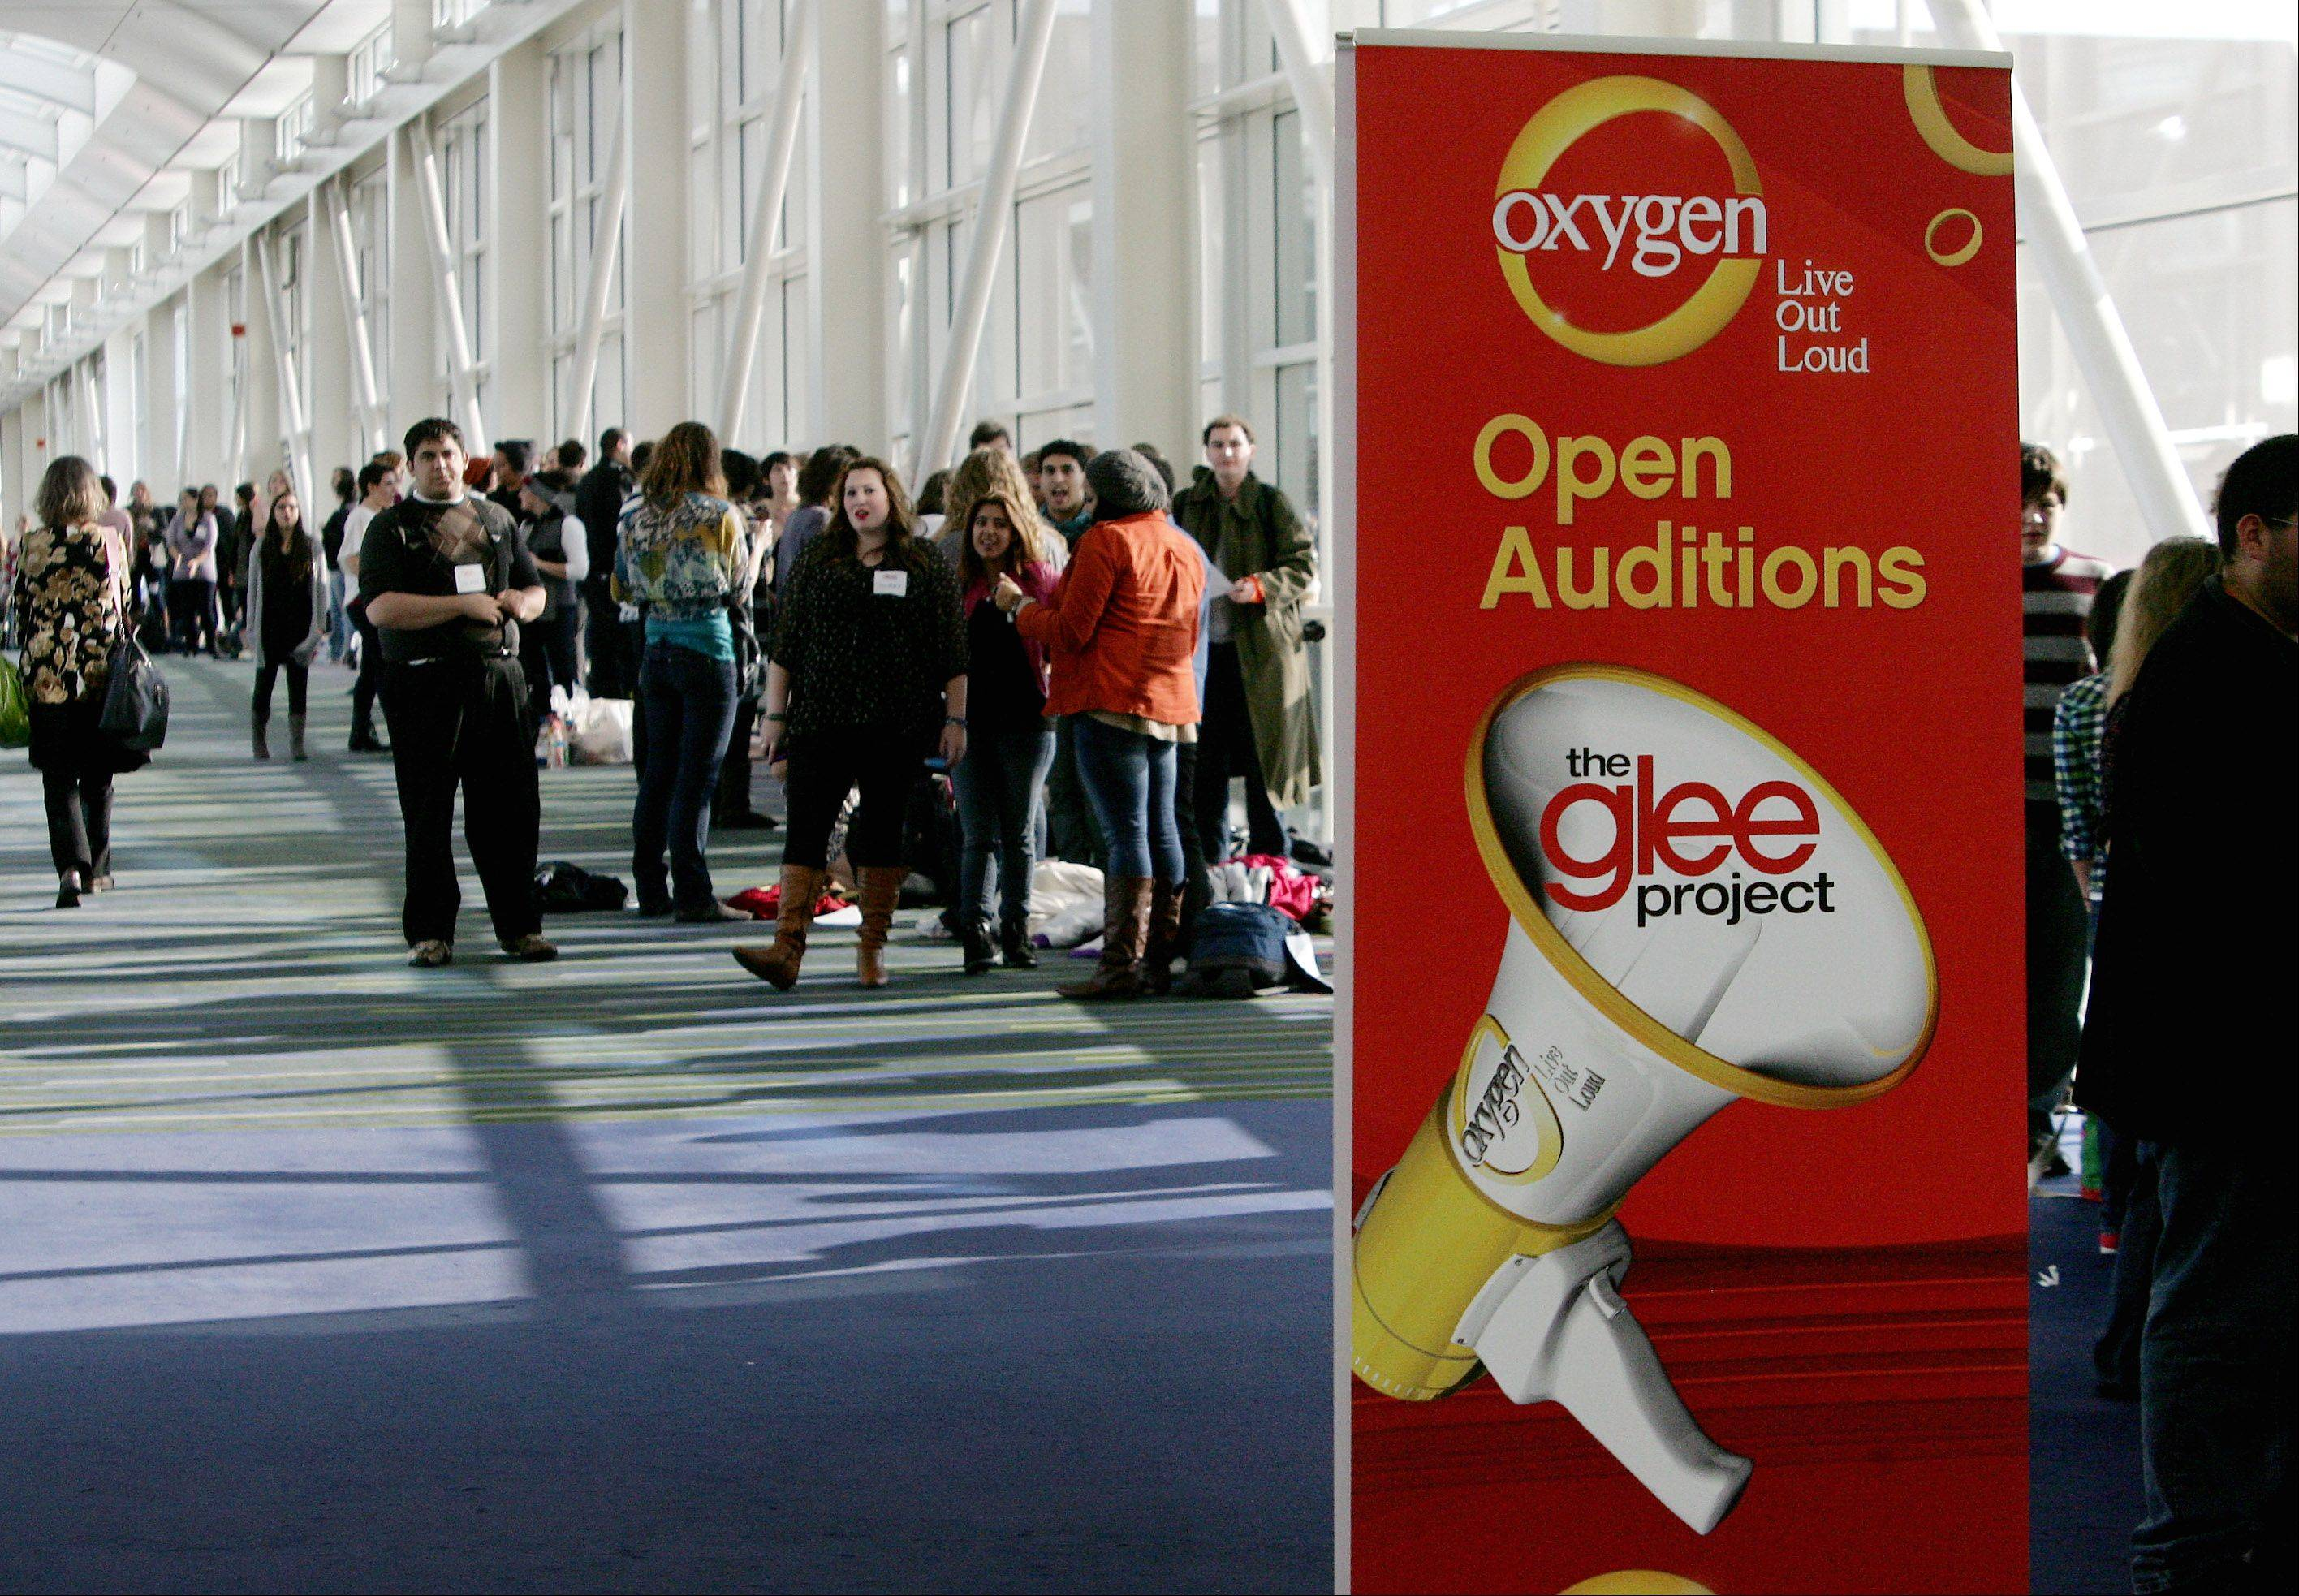 Scores of suburbanites audition for spot on 'The Glee Project'